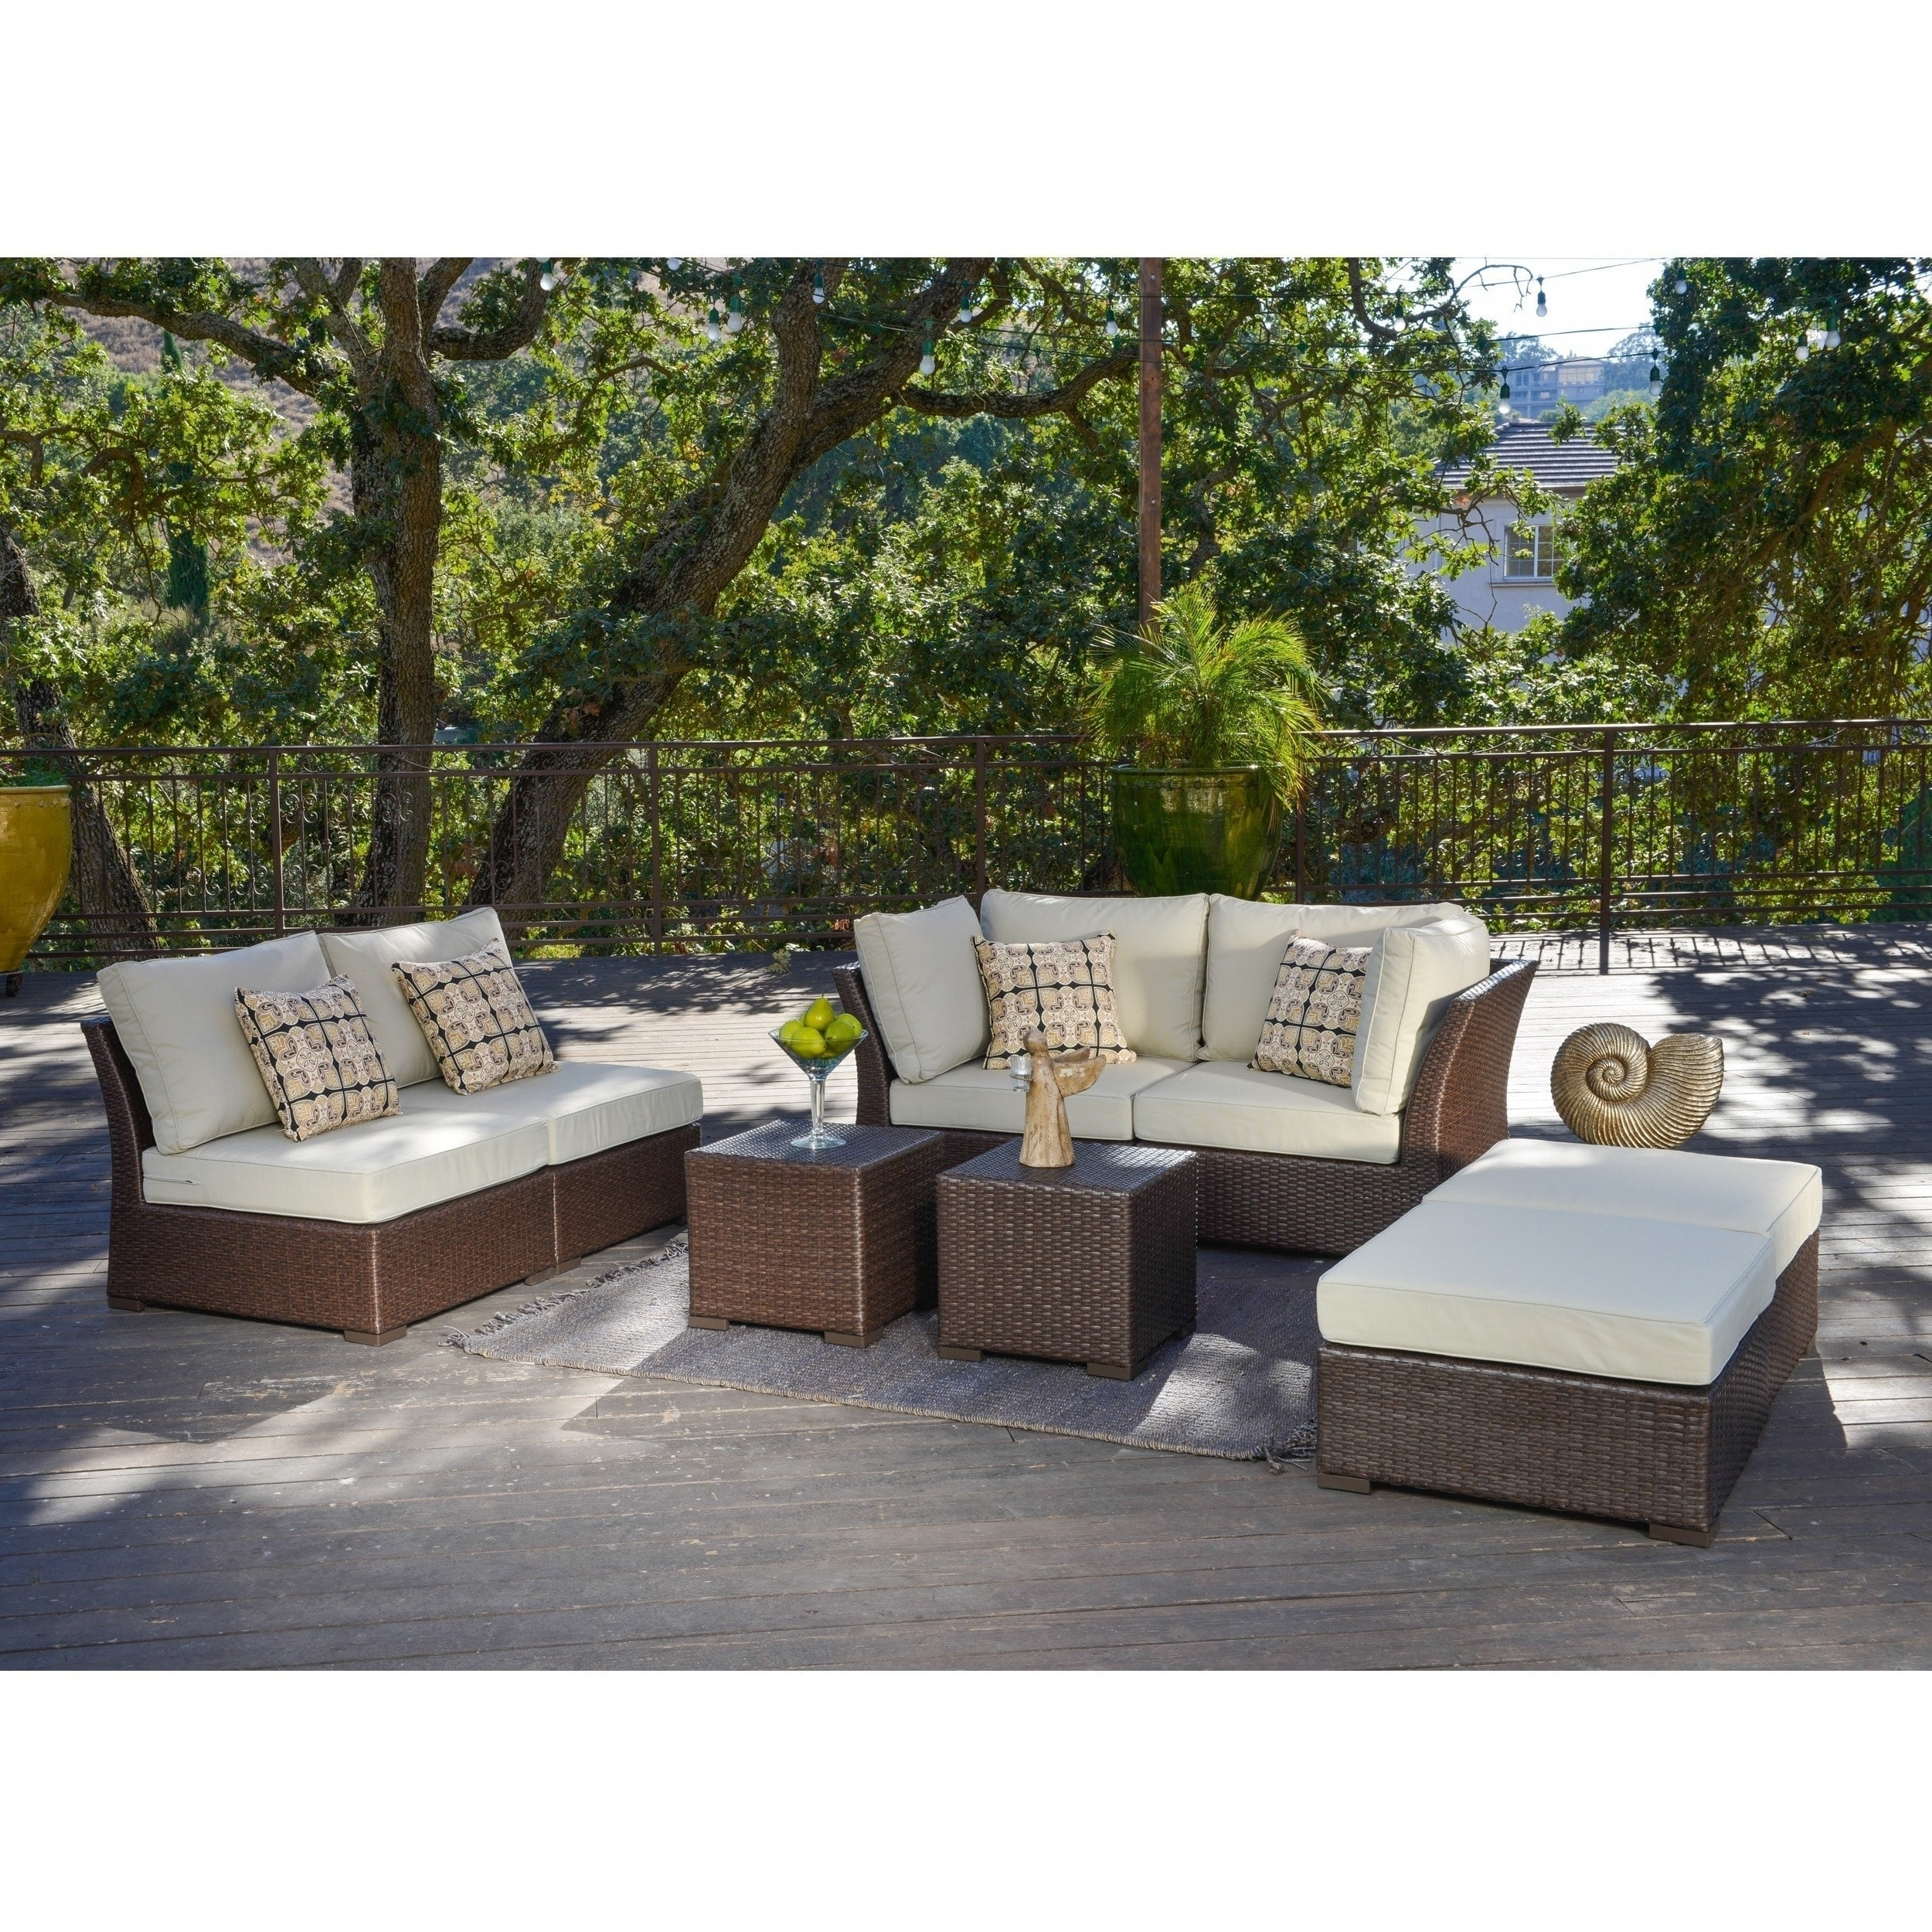 Attirant Shop Corvus Oreanne 8 Piece Brown Wicker Patio Furniture Set   On Sale    Free Shipping Today   Overstock.com   9018067